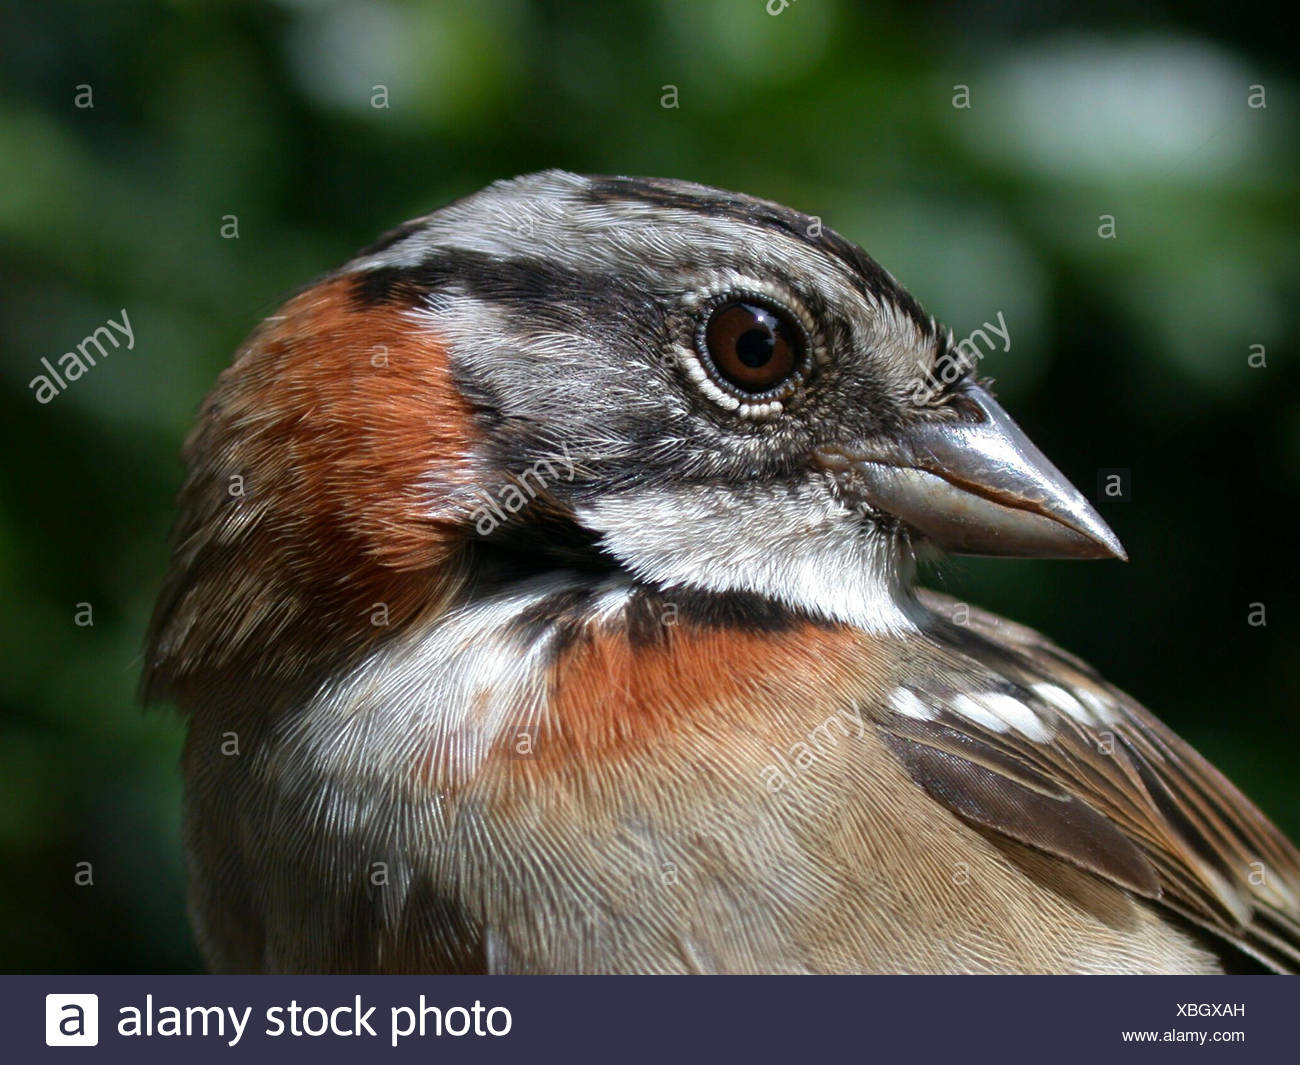 Close-up of a rufous-collared sparrow, Zonotrichia capensis. Stock Photo